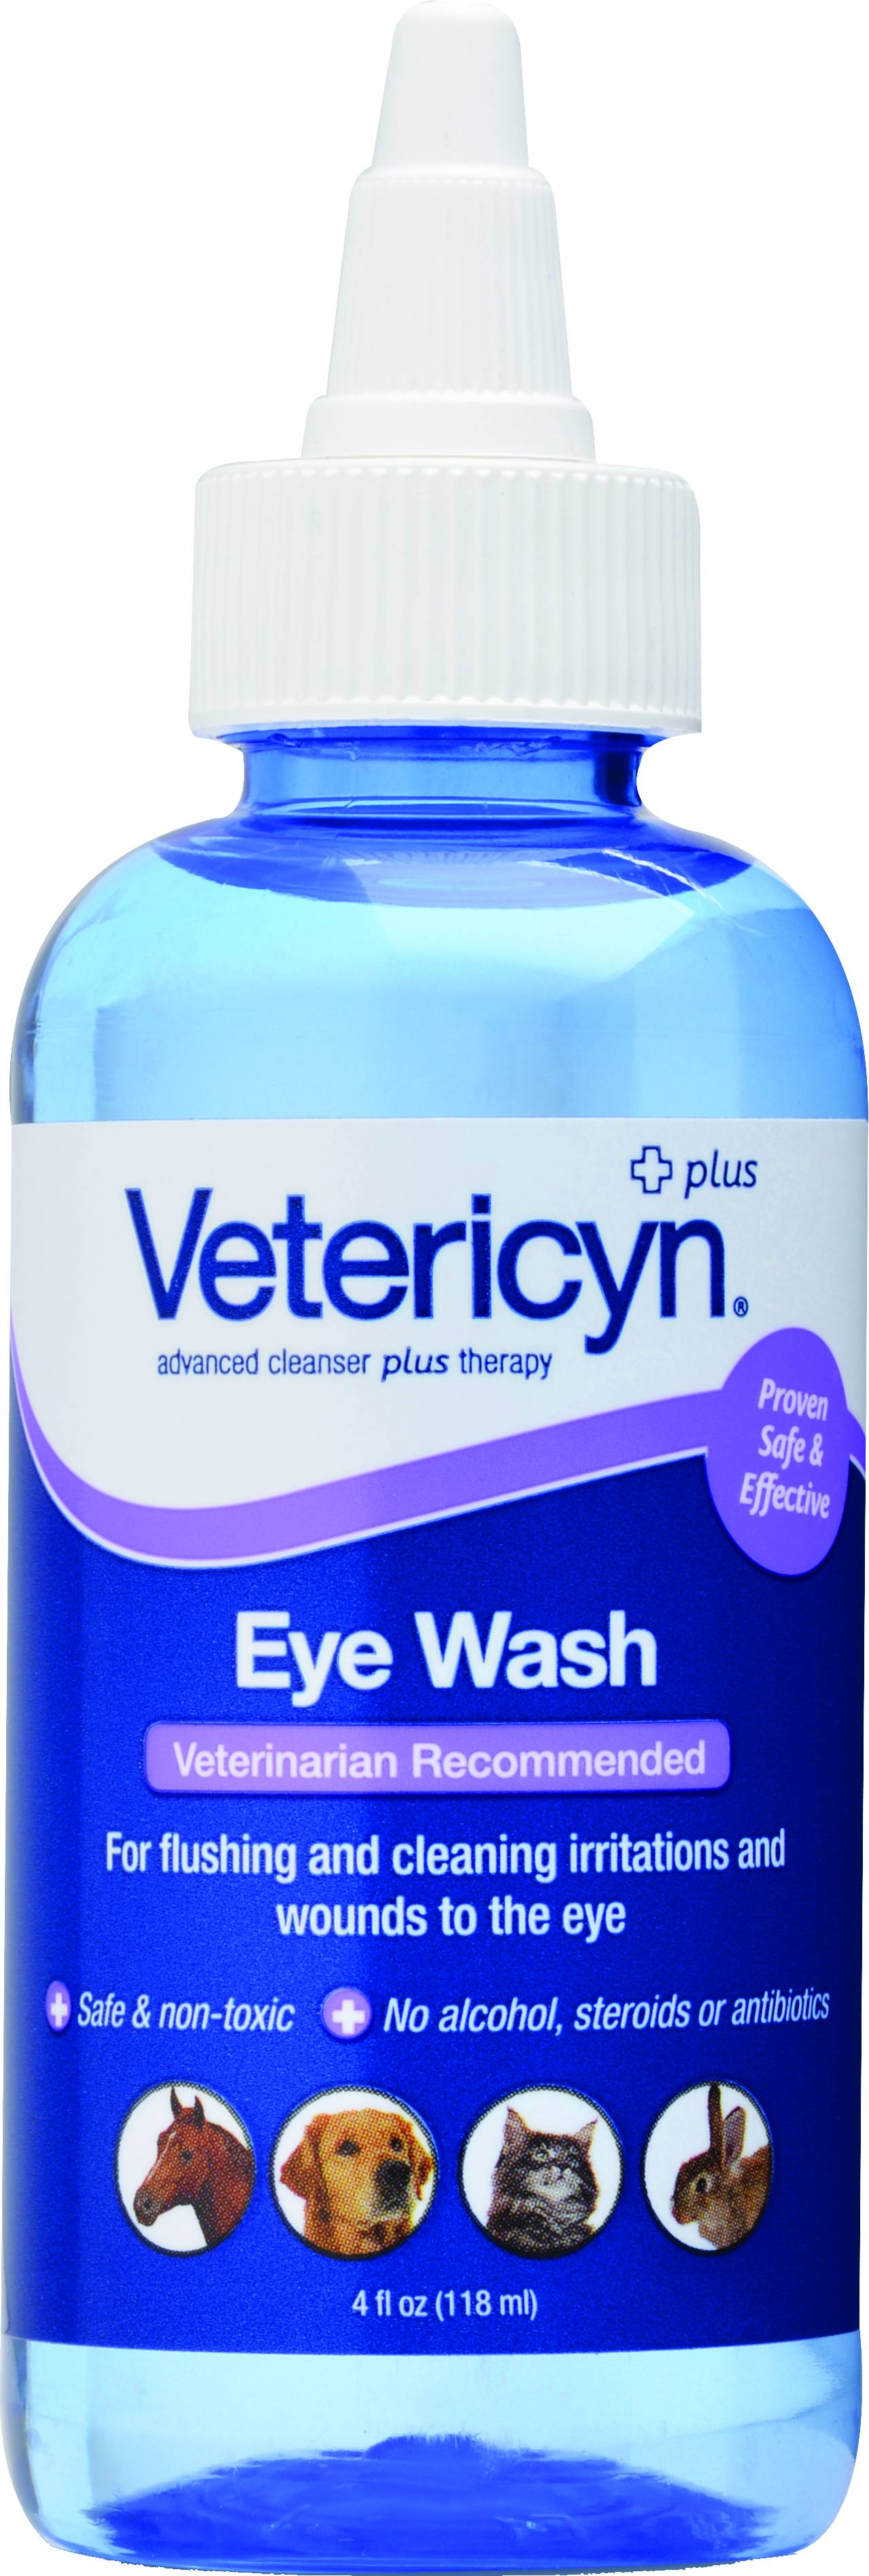 Vetericyn All Animal Eye Wash